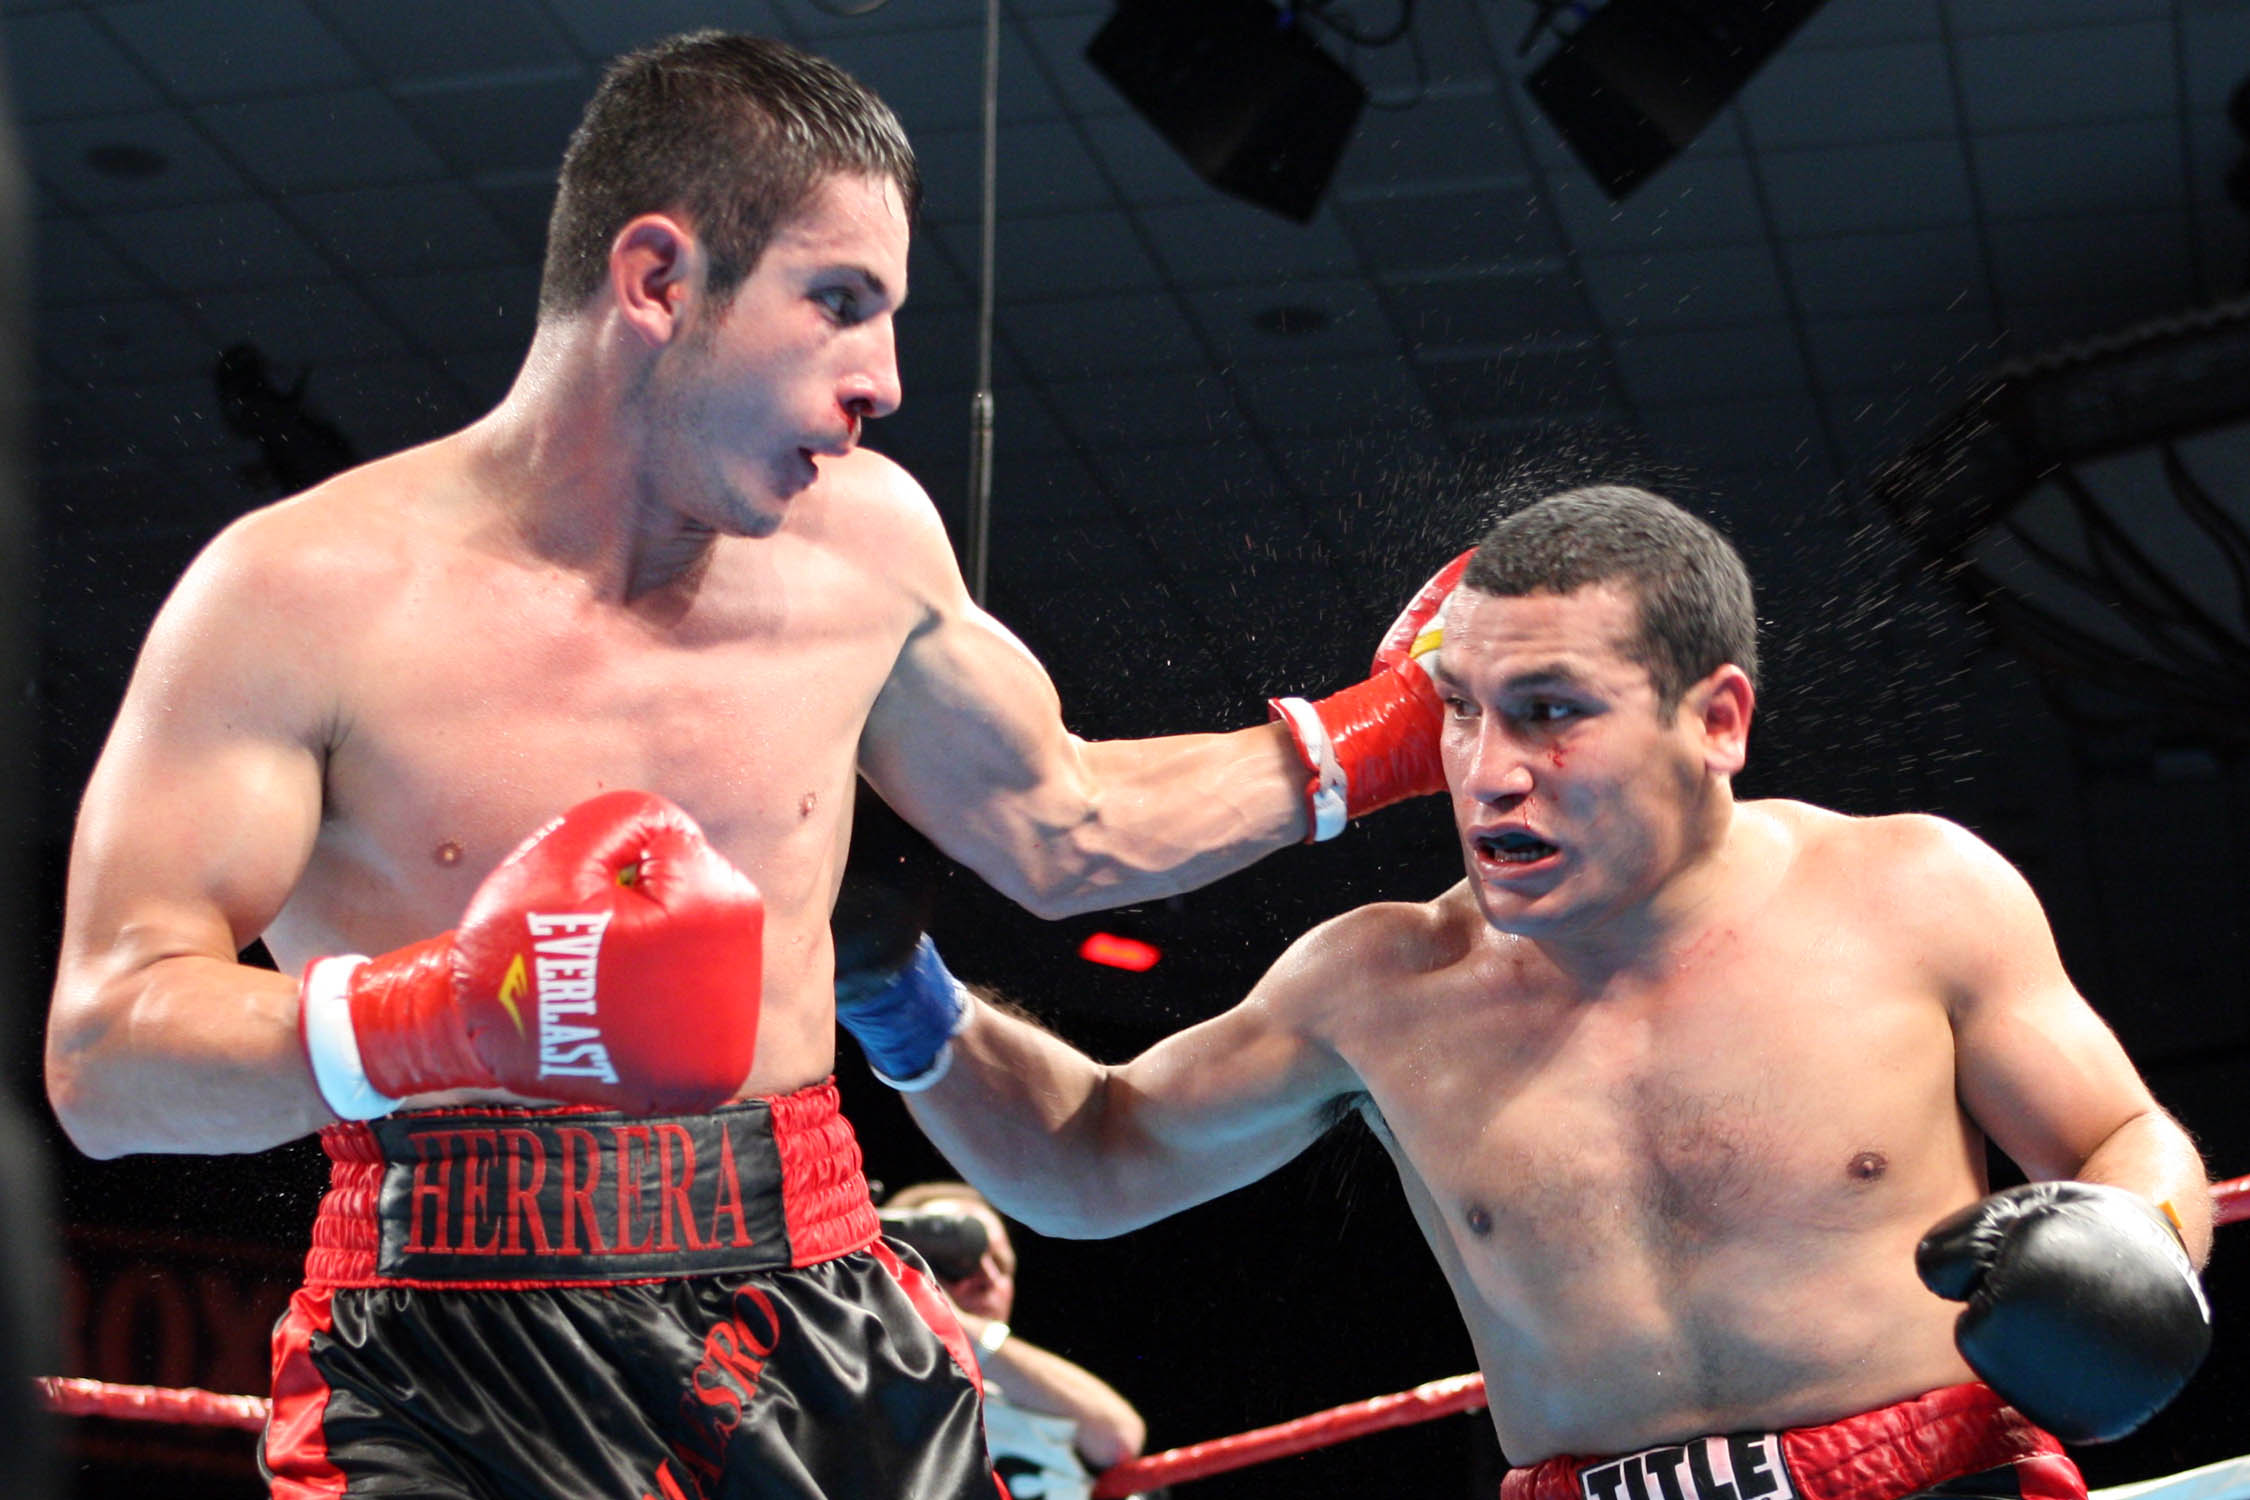 Anchondo, left, of La Puente , Calif. , improved 30-2 with the split decision. Scores were 77-75, 77-75 Anchondo, 79-73 Herrera